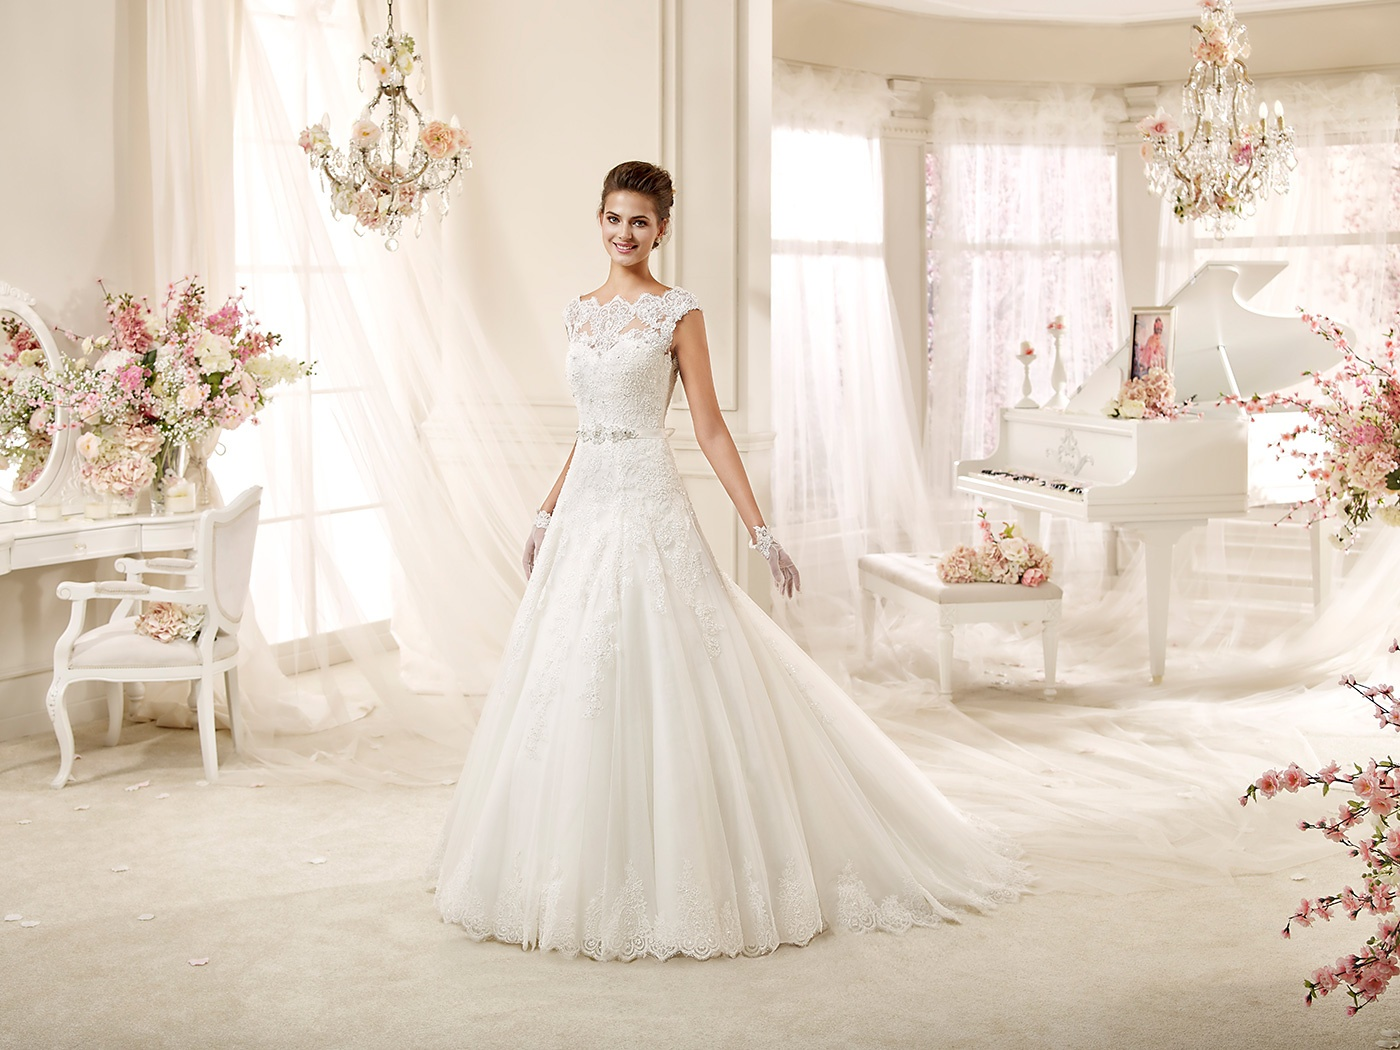 Wedding Dresses Nicole Spose Colet Collection 2016 Bajkowe Chwile